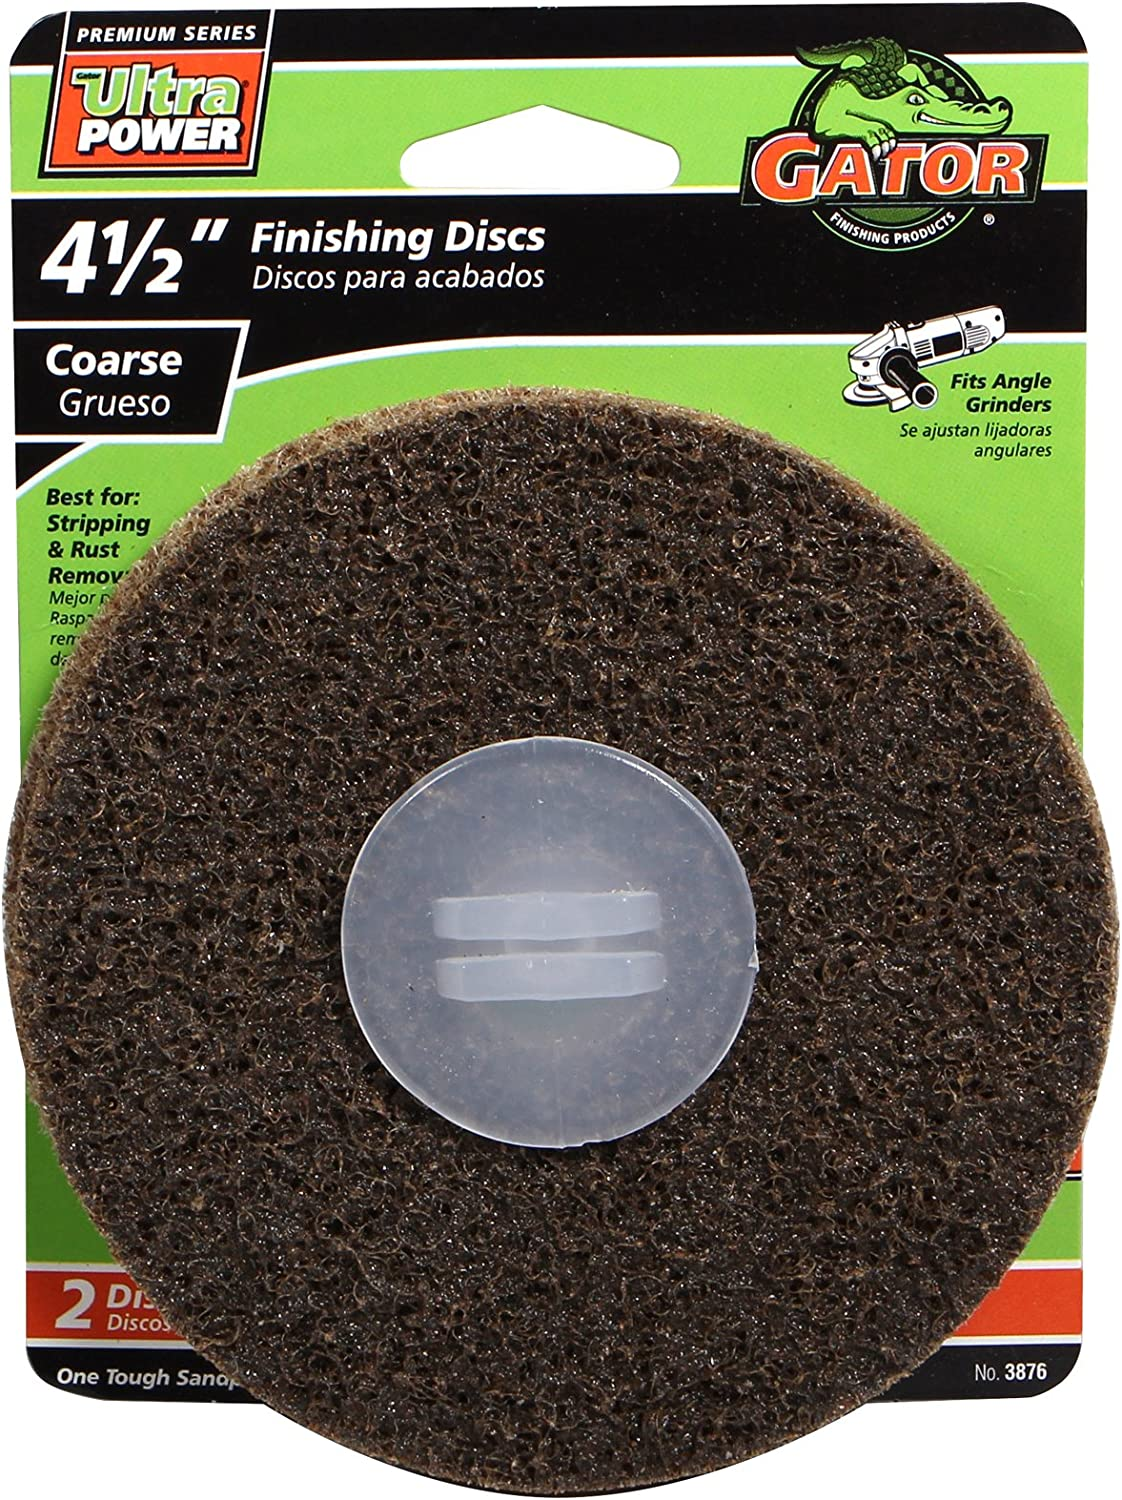 Gator Finishing 3876 Coarse Surface Conditioning Disc (2 Pack), 4.5""